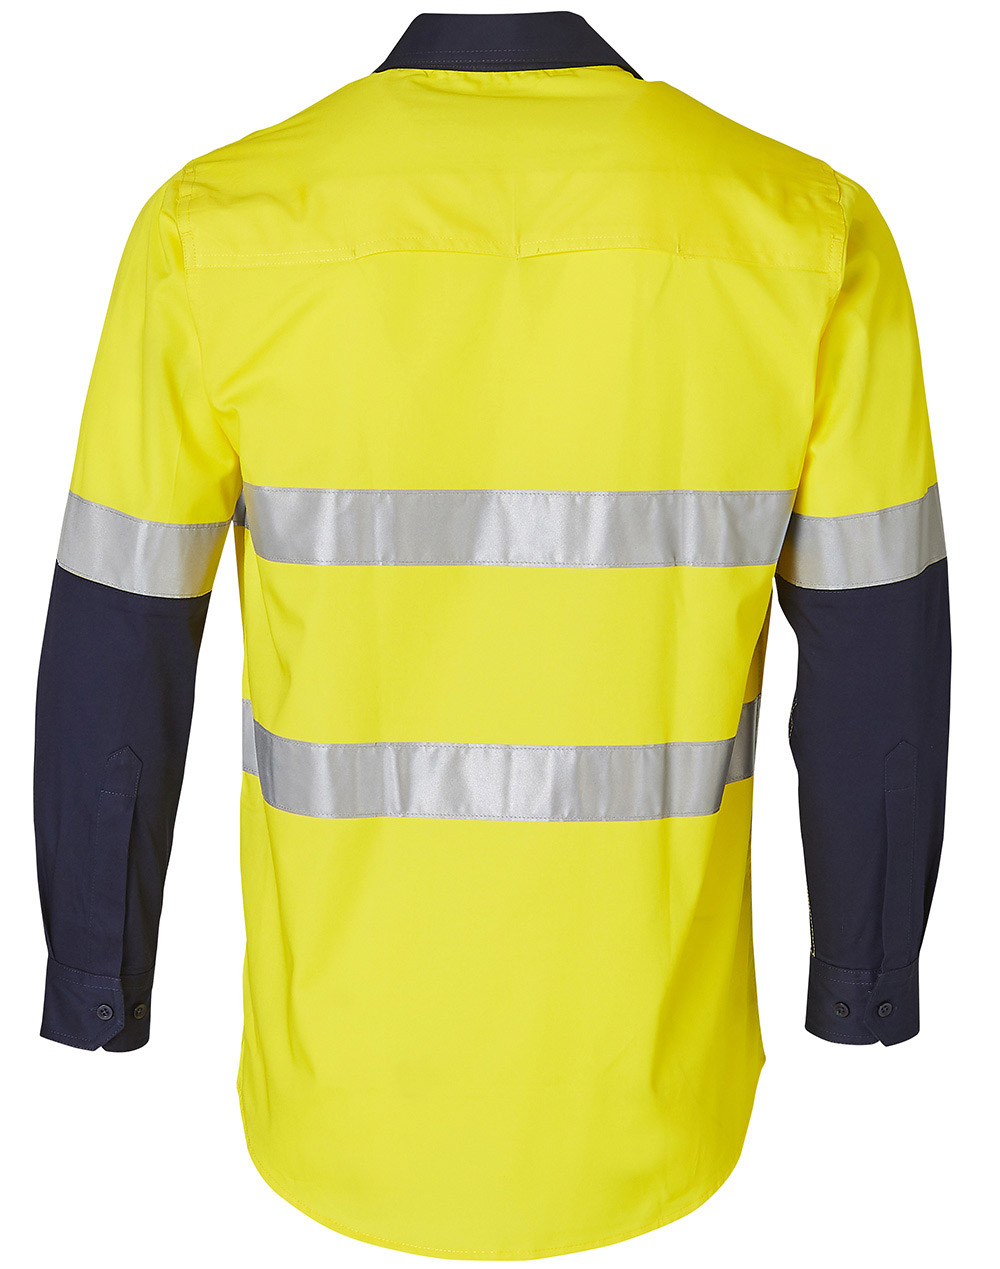 https://s3-ap-southeast-1.amazonaws.com/ws-imgs/WORKWEAR/SW60_YellowNavy_Back.jpg